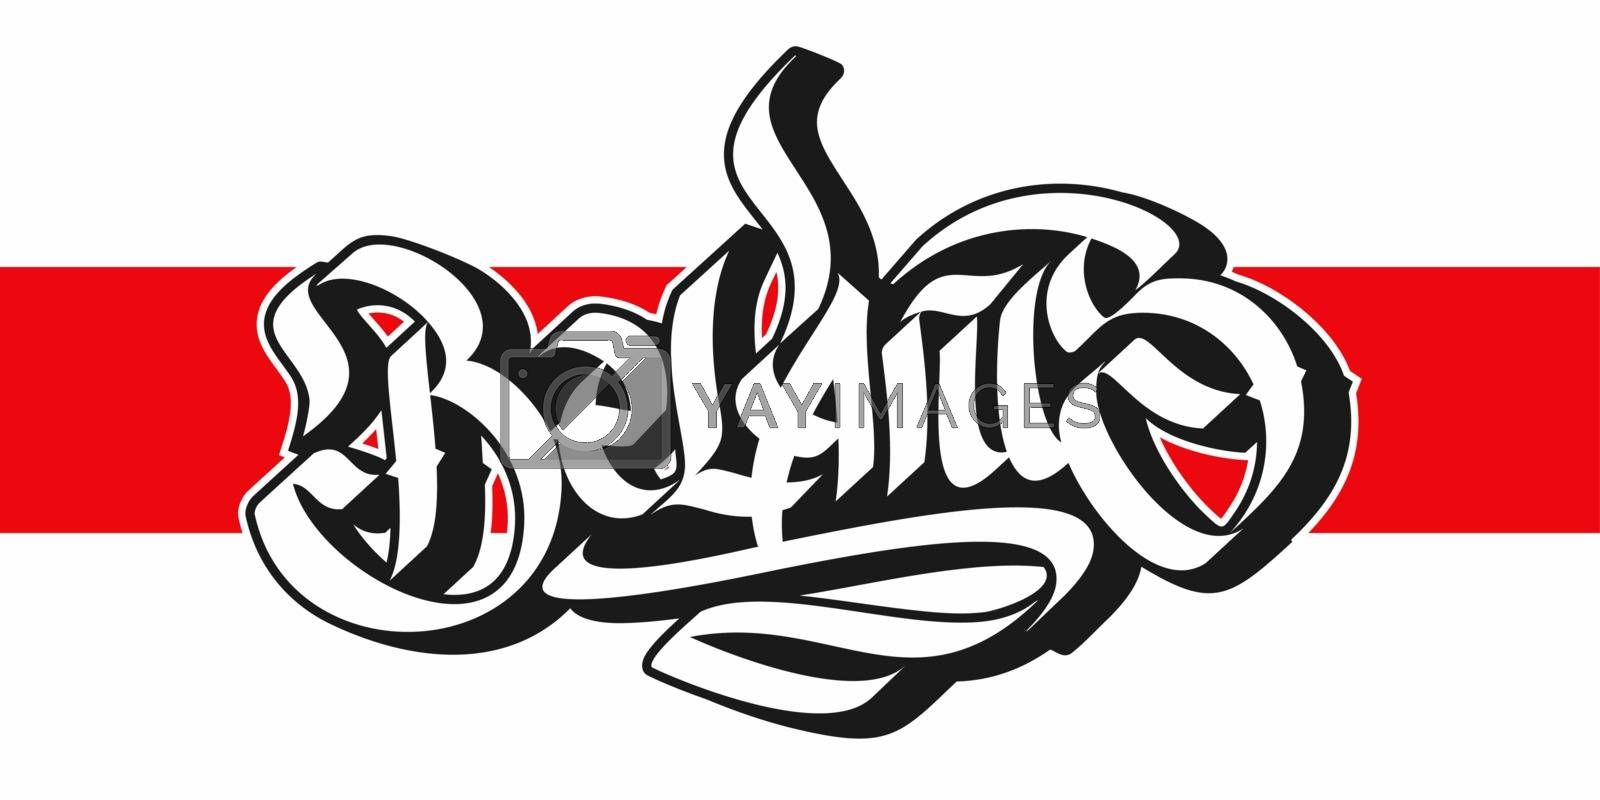 Abstract Word Belarus Graffiti Font Lettering With Belarus National Flag On The Background